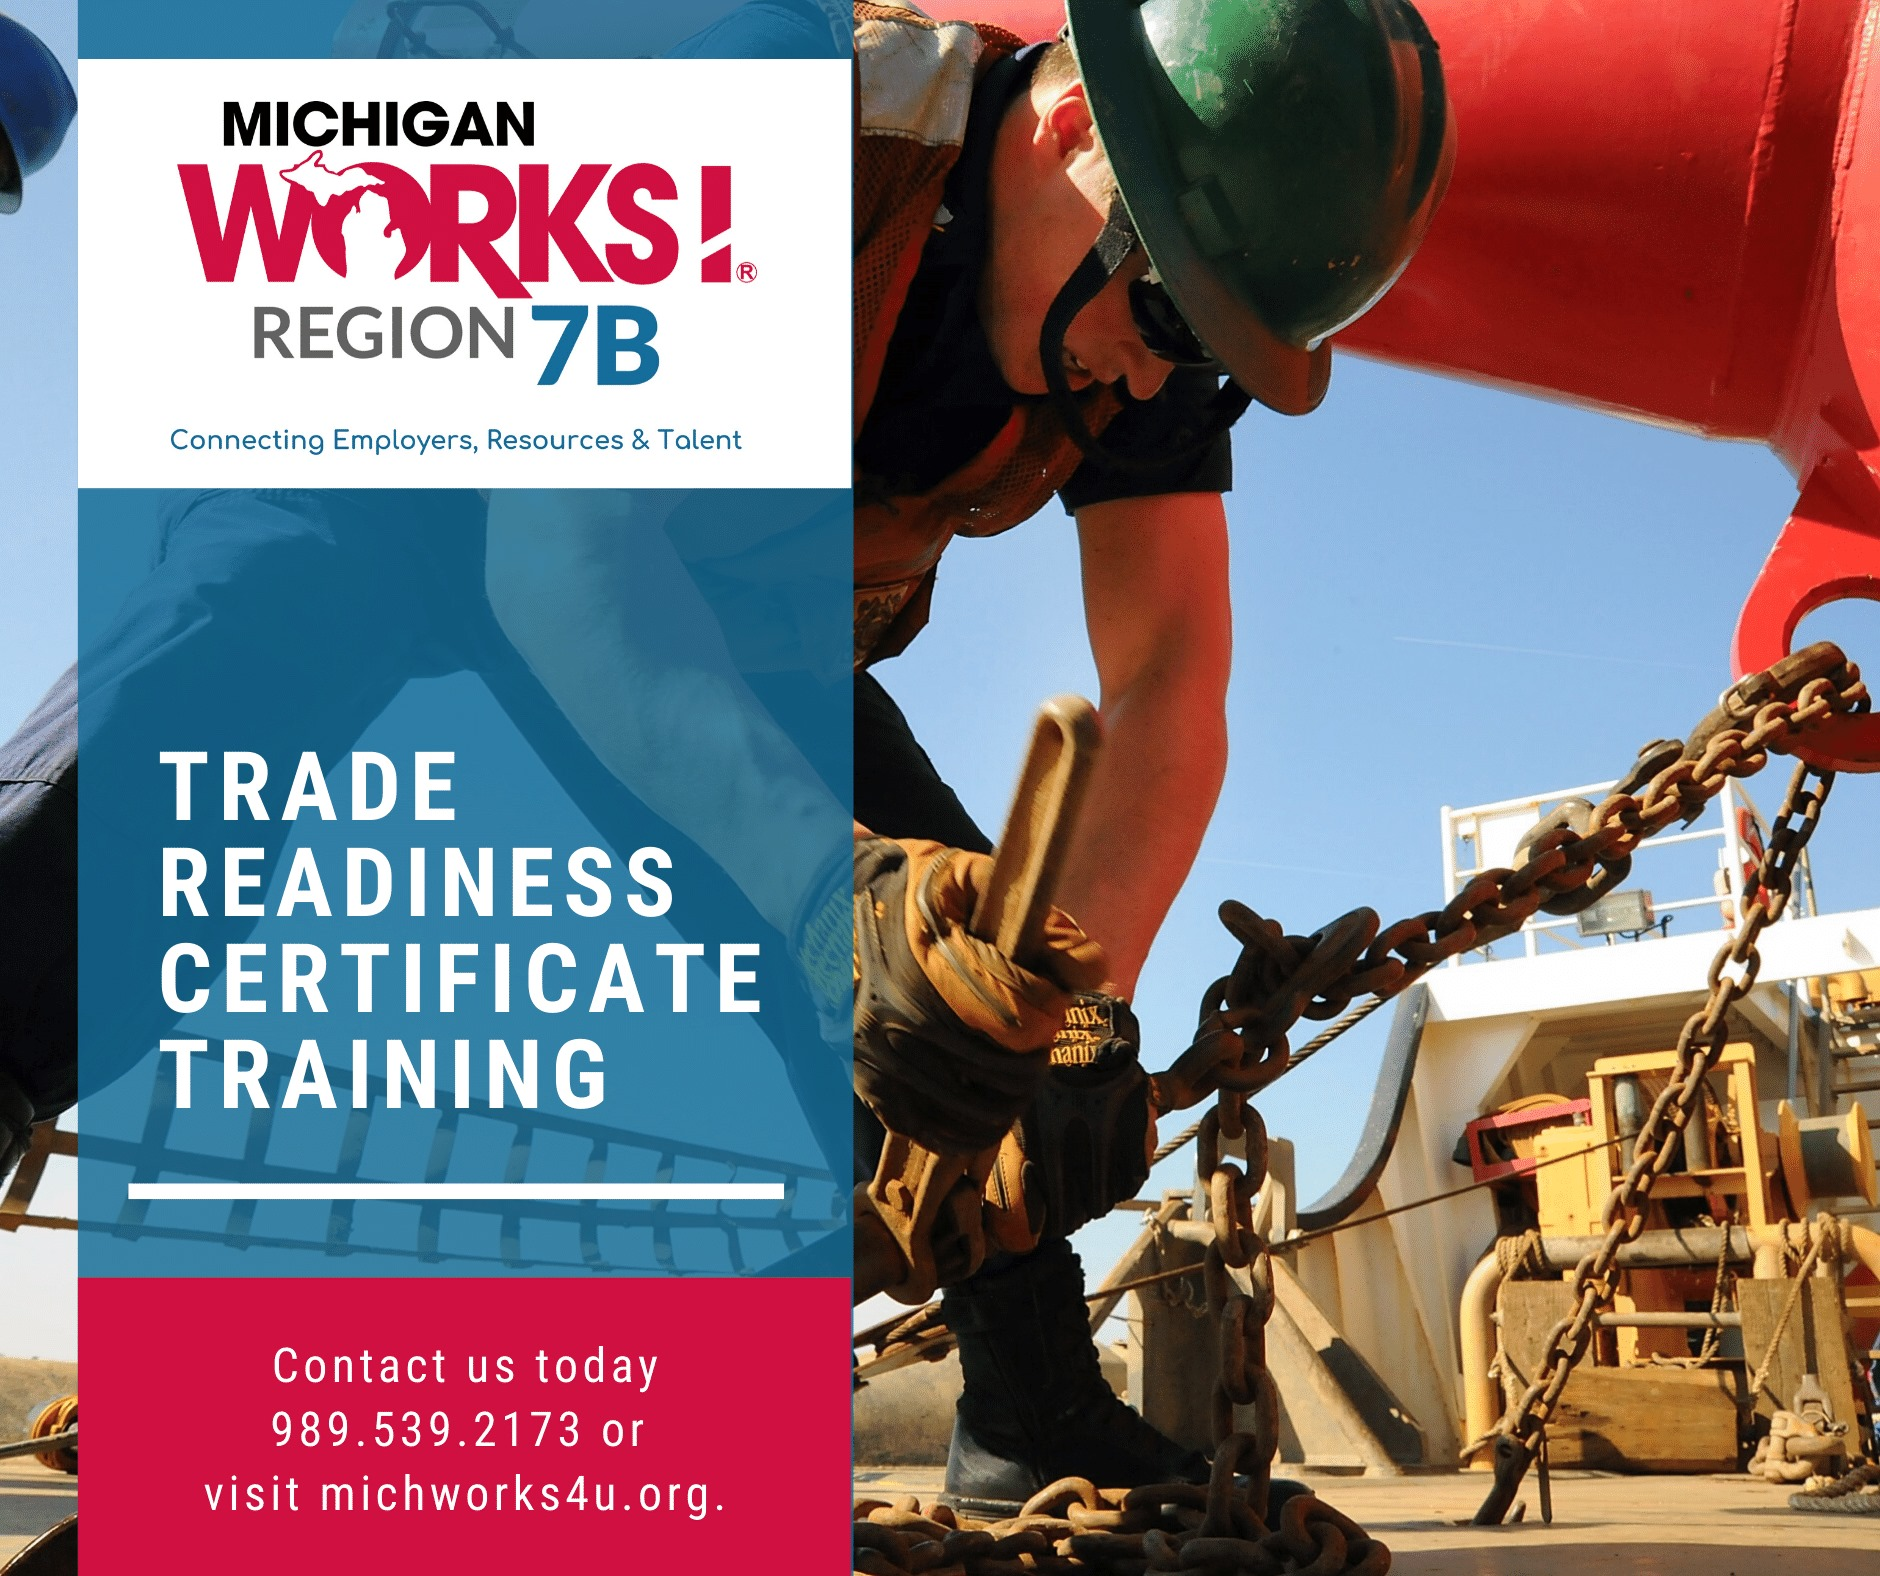 Trade Readiness Certificate Program